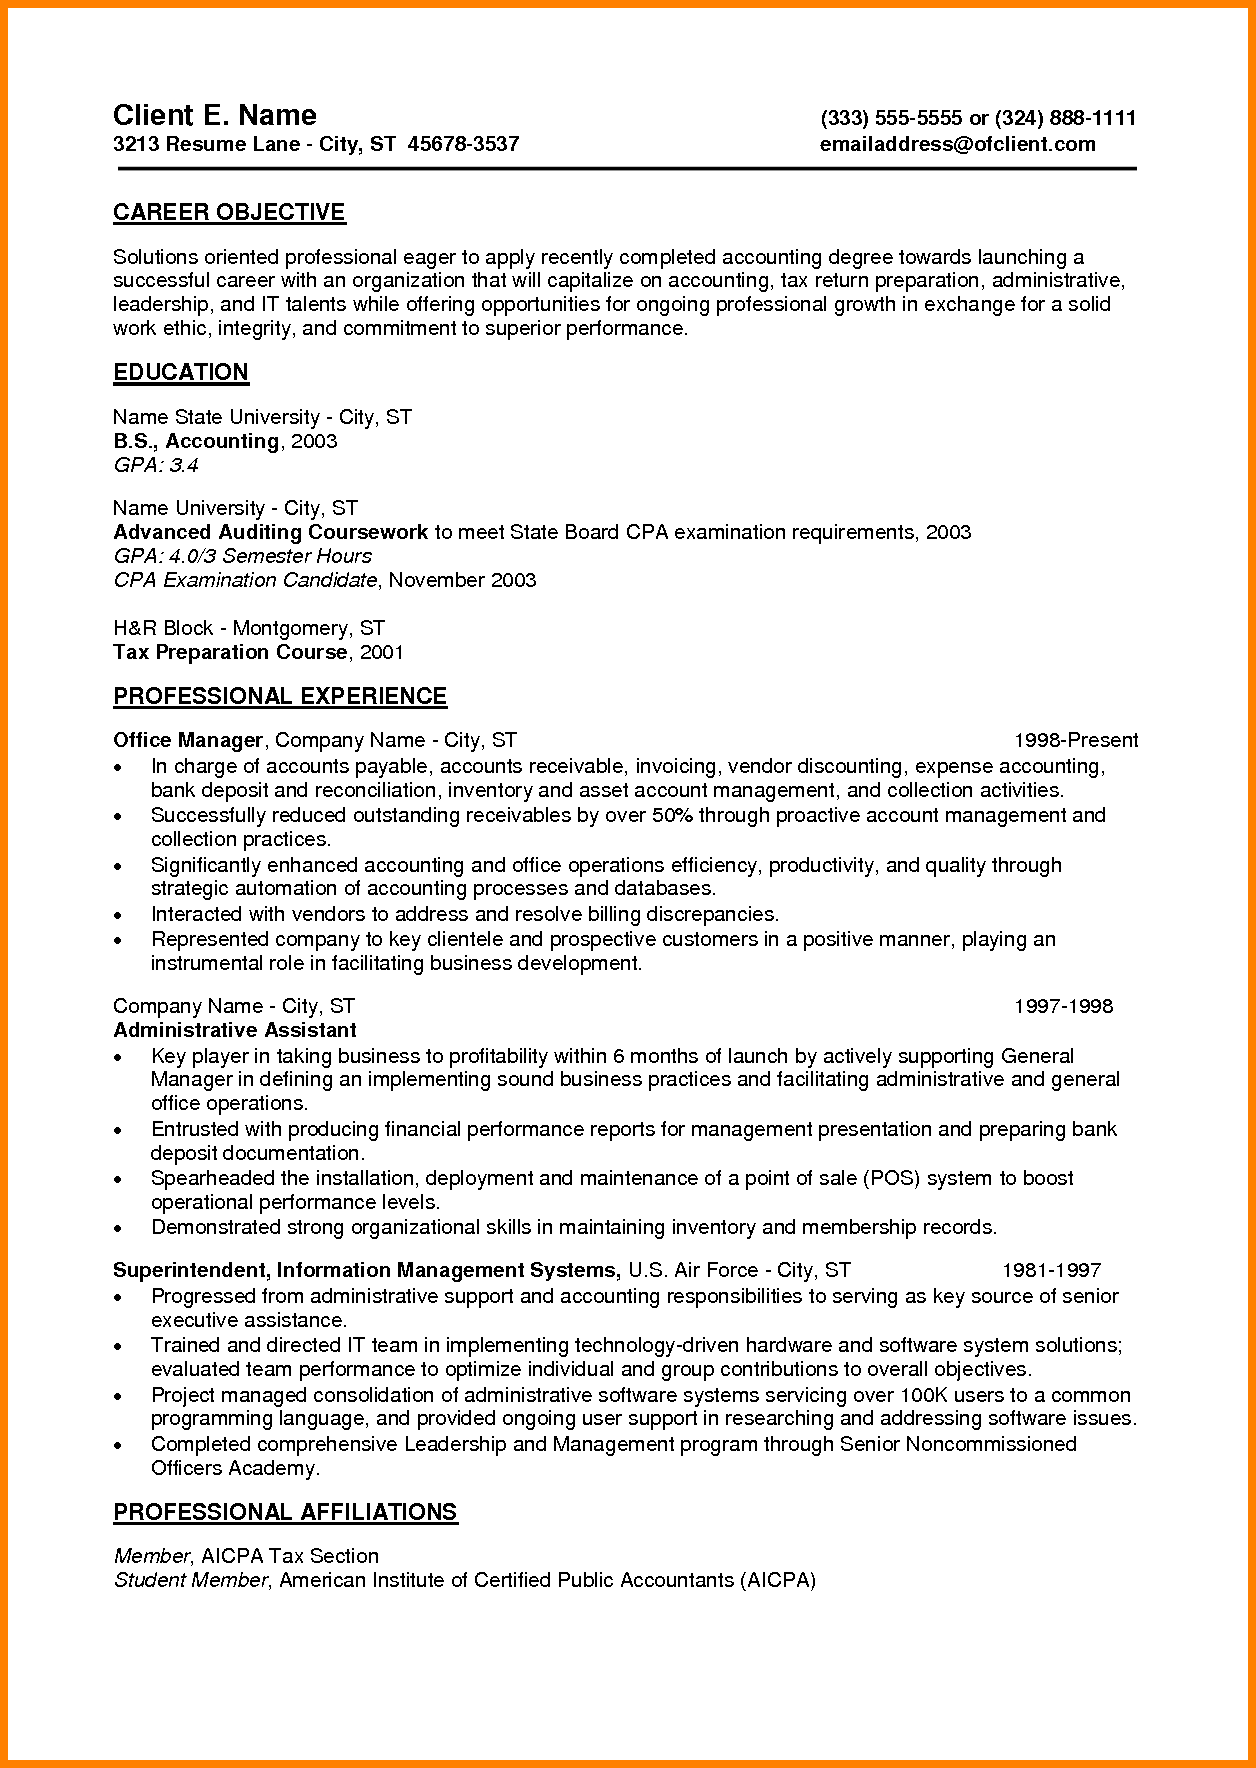 Summary Career Objective Qualifications Resume Example Samples Entry Level  Qualifications On A Resume